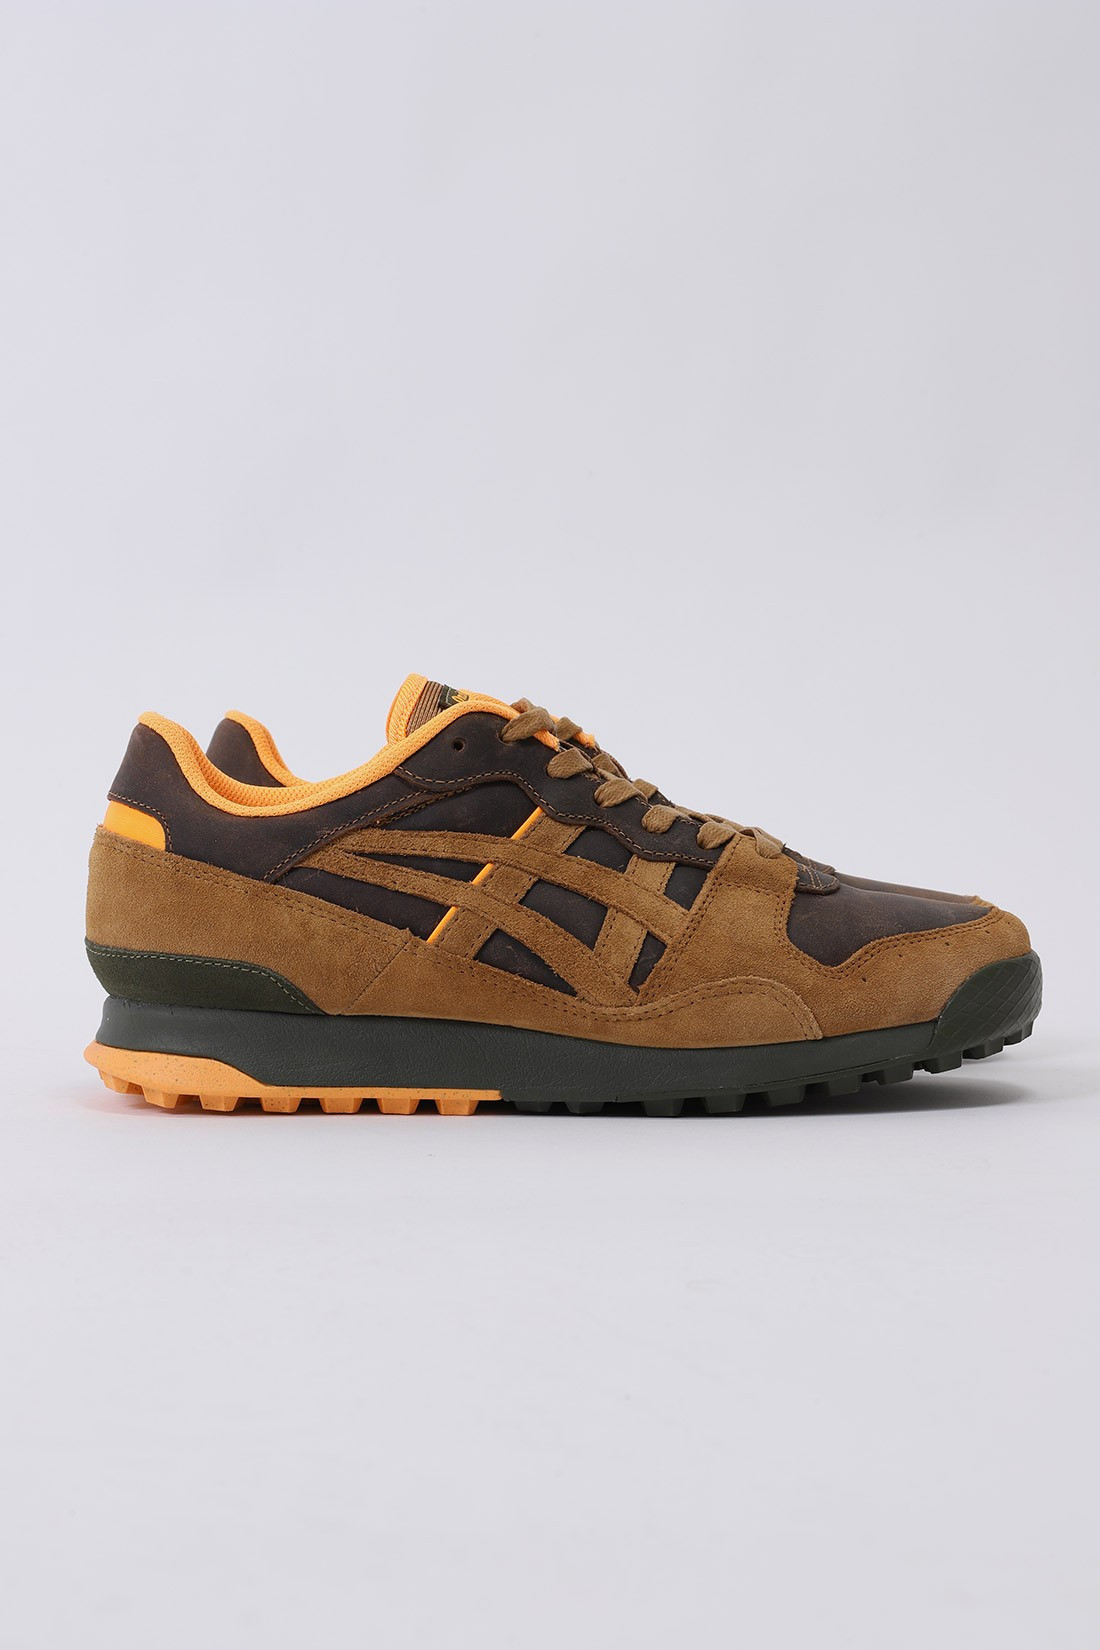 ASICS / Tiger horizonia Brown storm